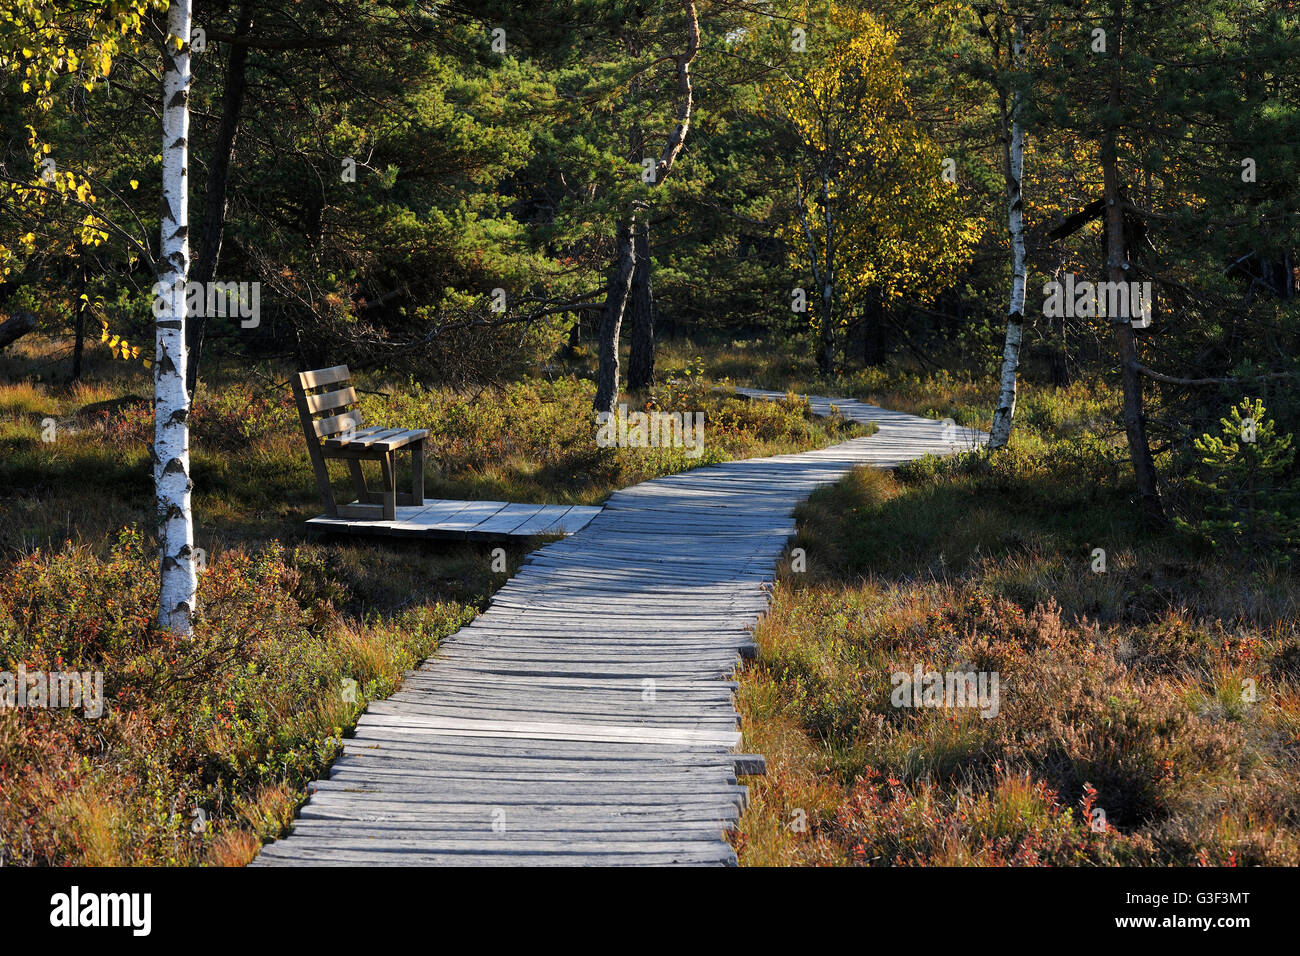 Wooden Planks Path with Bench in Bog, Autumn, Schwarzes Moor, Fladungen, Rhoen Mountain, Bavaria, Germany - Stock Image